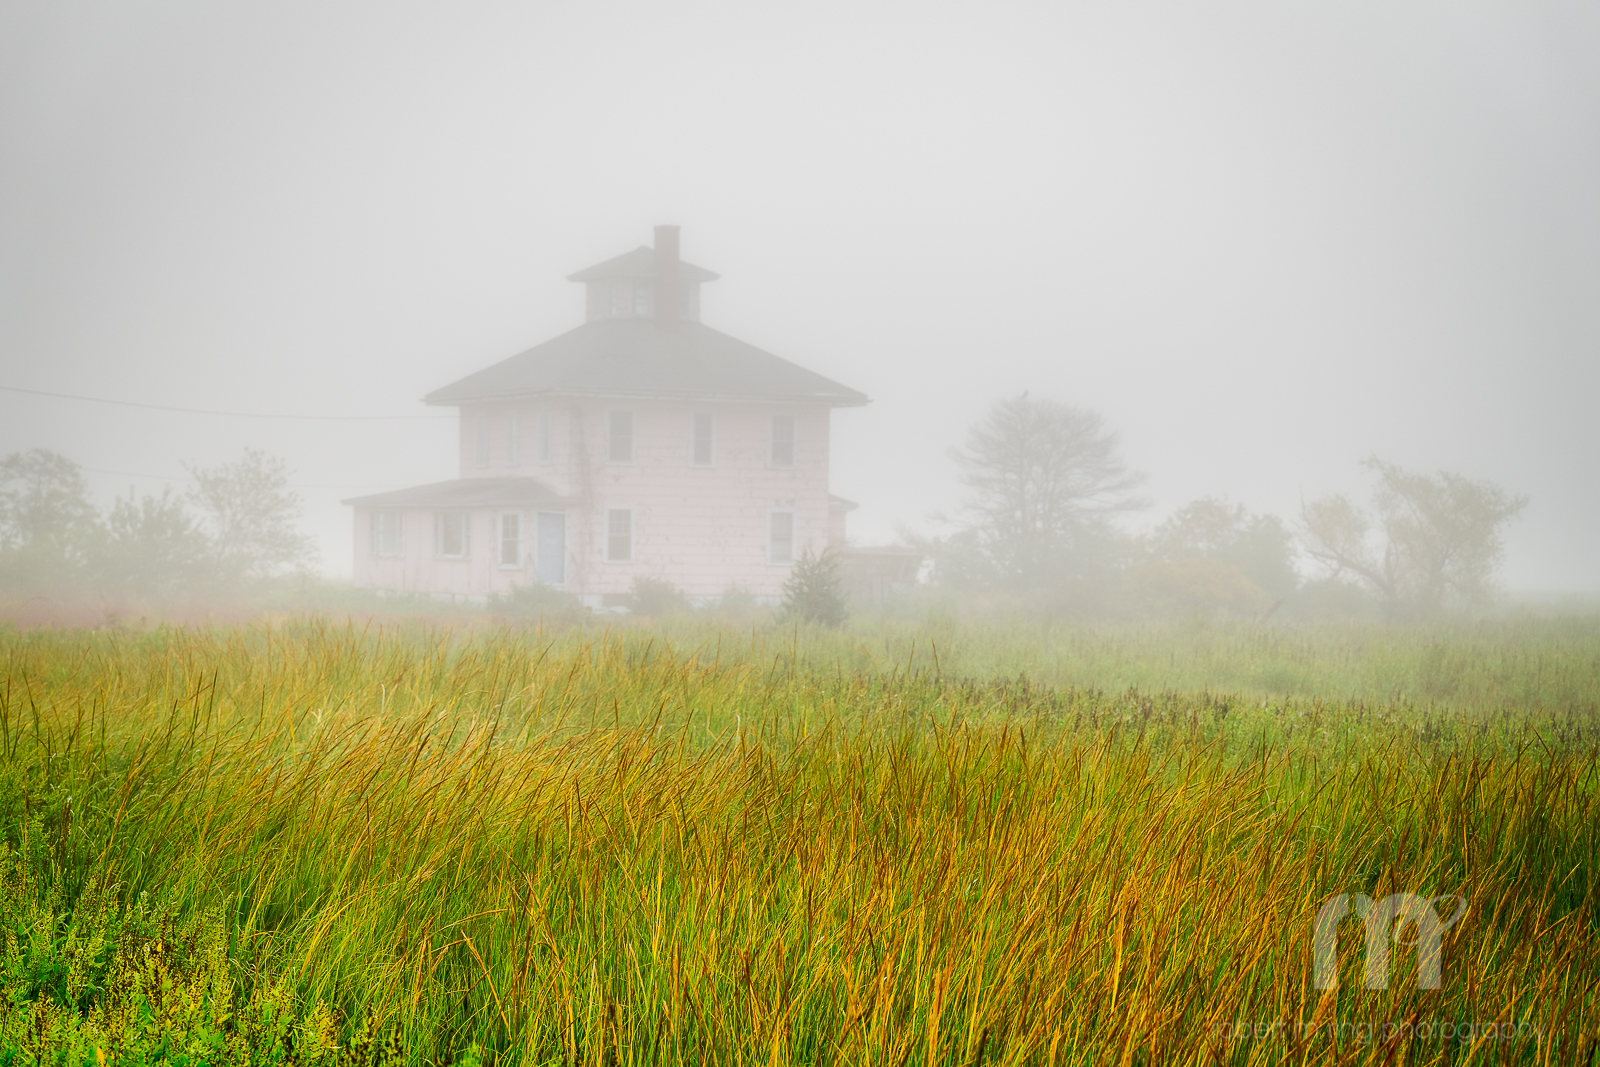 Fog, Foggy, Pink House, New England, North Shore, scenic, landscape, essex county